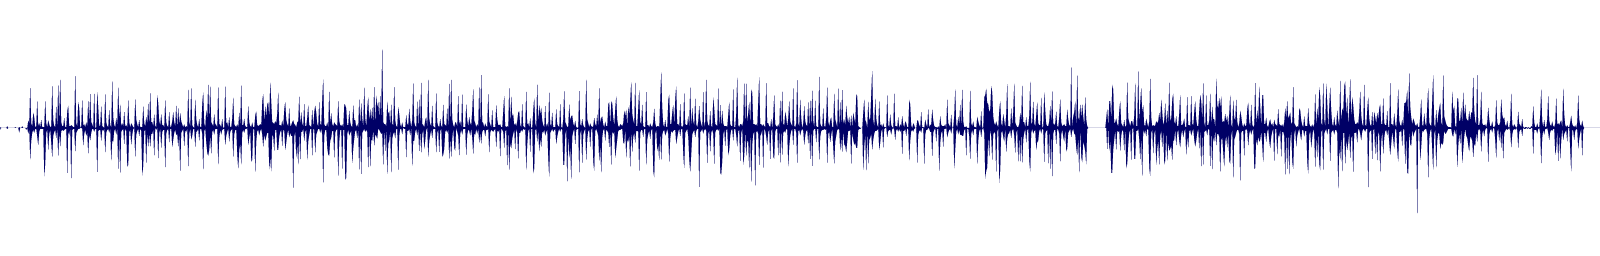 waveform of track #110646